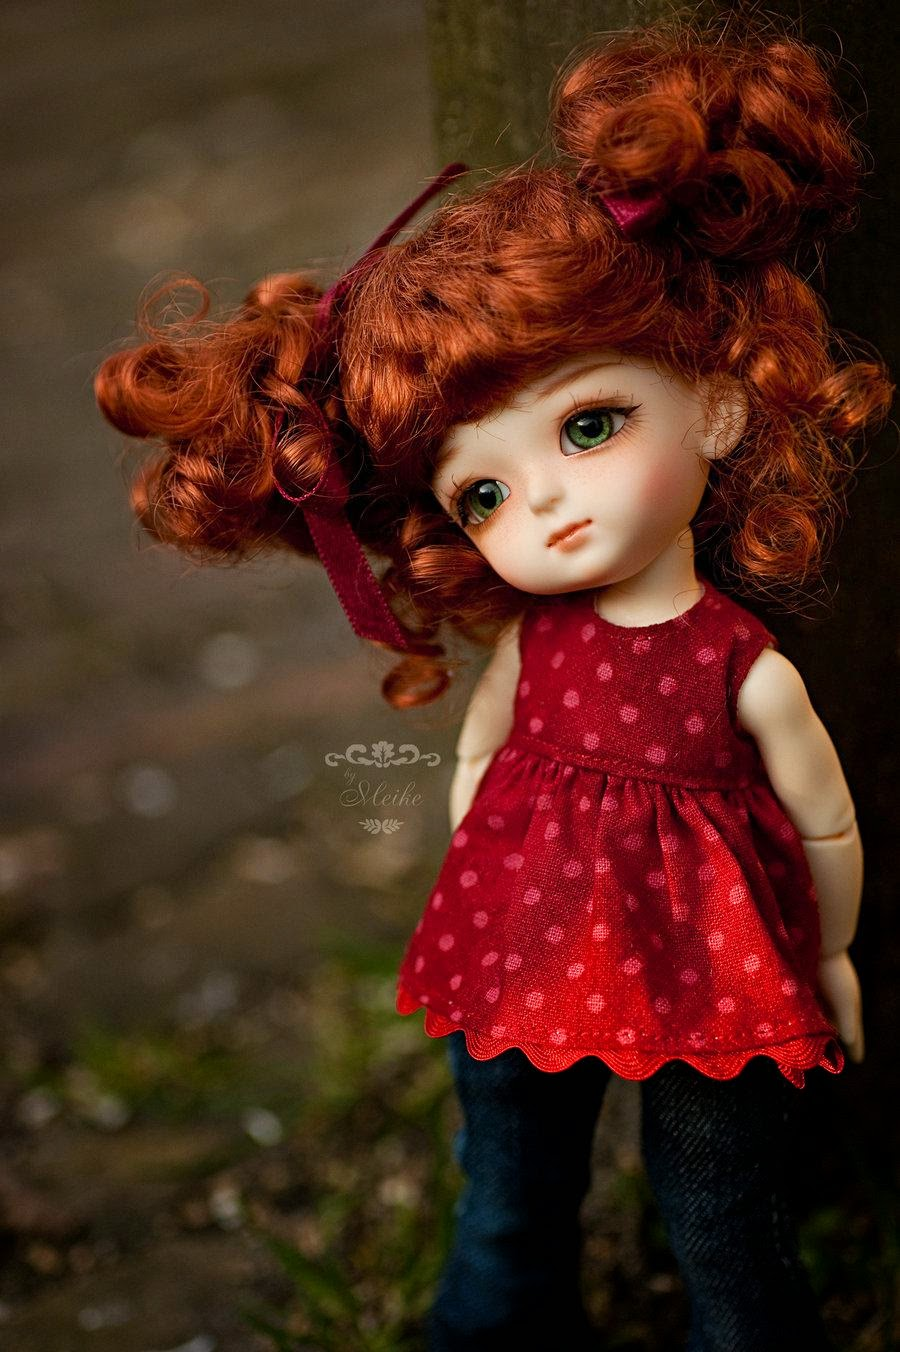 Stylish cute dolls high definition photography wallpaper - Cute barbie doll wallpaper hd ...